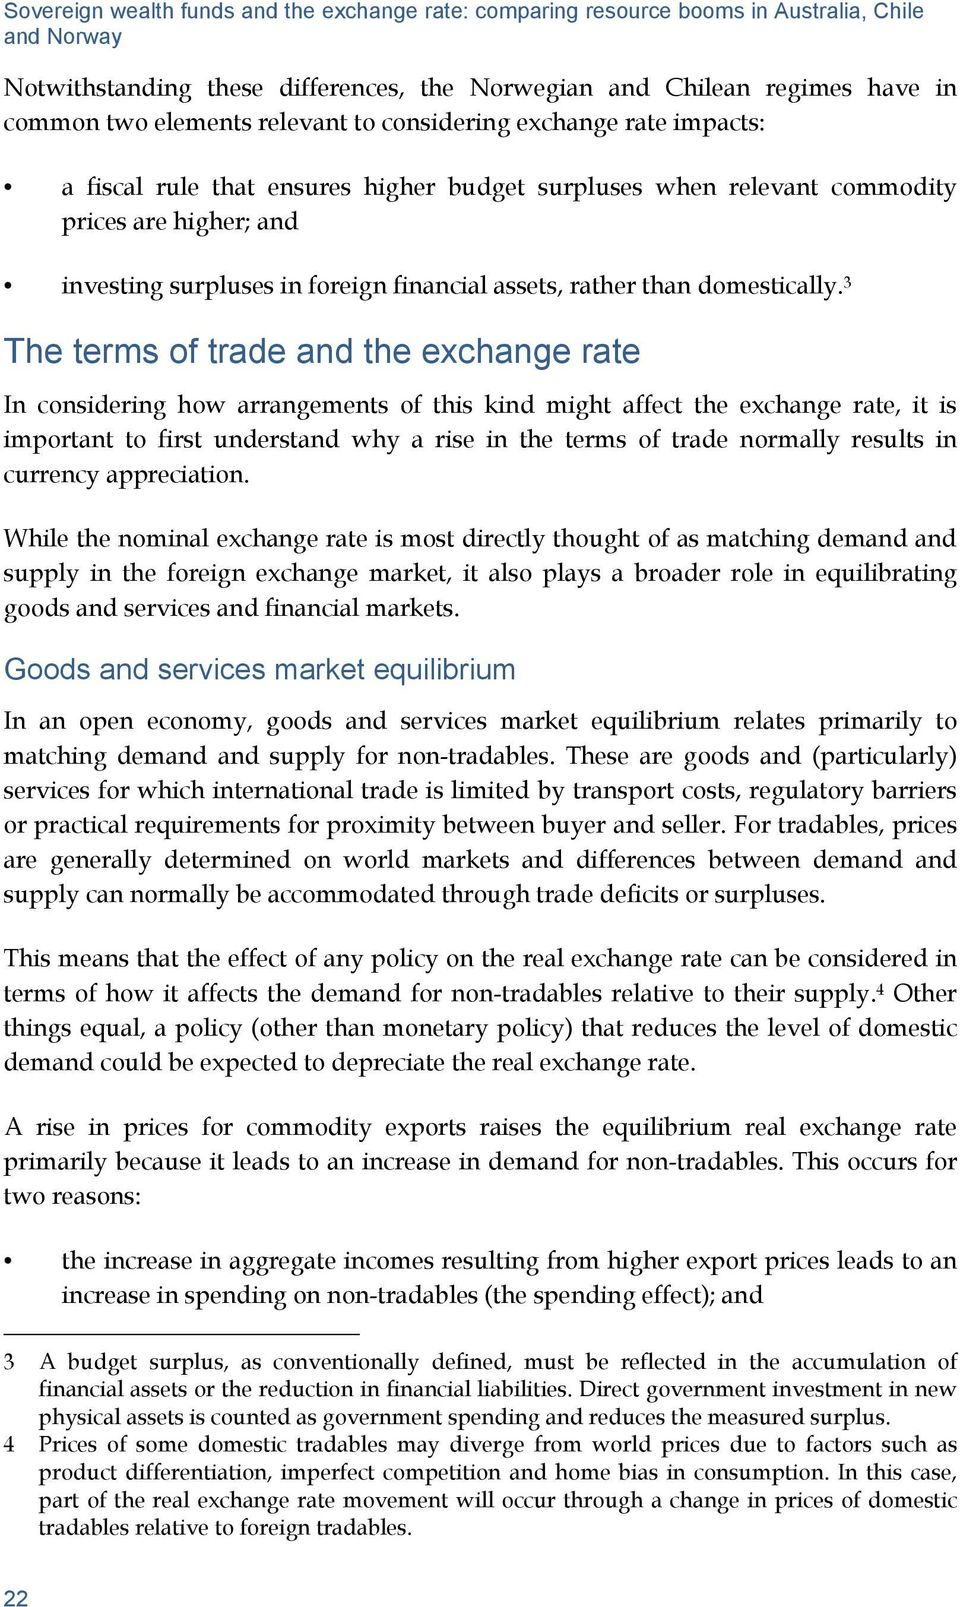 3 The terms of trade and the exchange rate In considering how arrangements of this kind might affect the exchange rate, it is important to first understand why a rise in the terms of trade normally